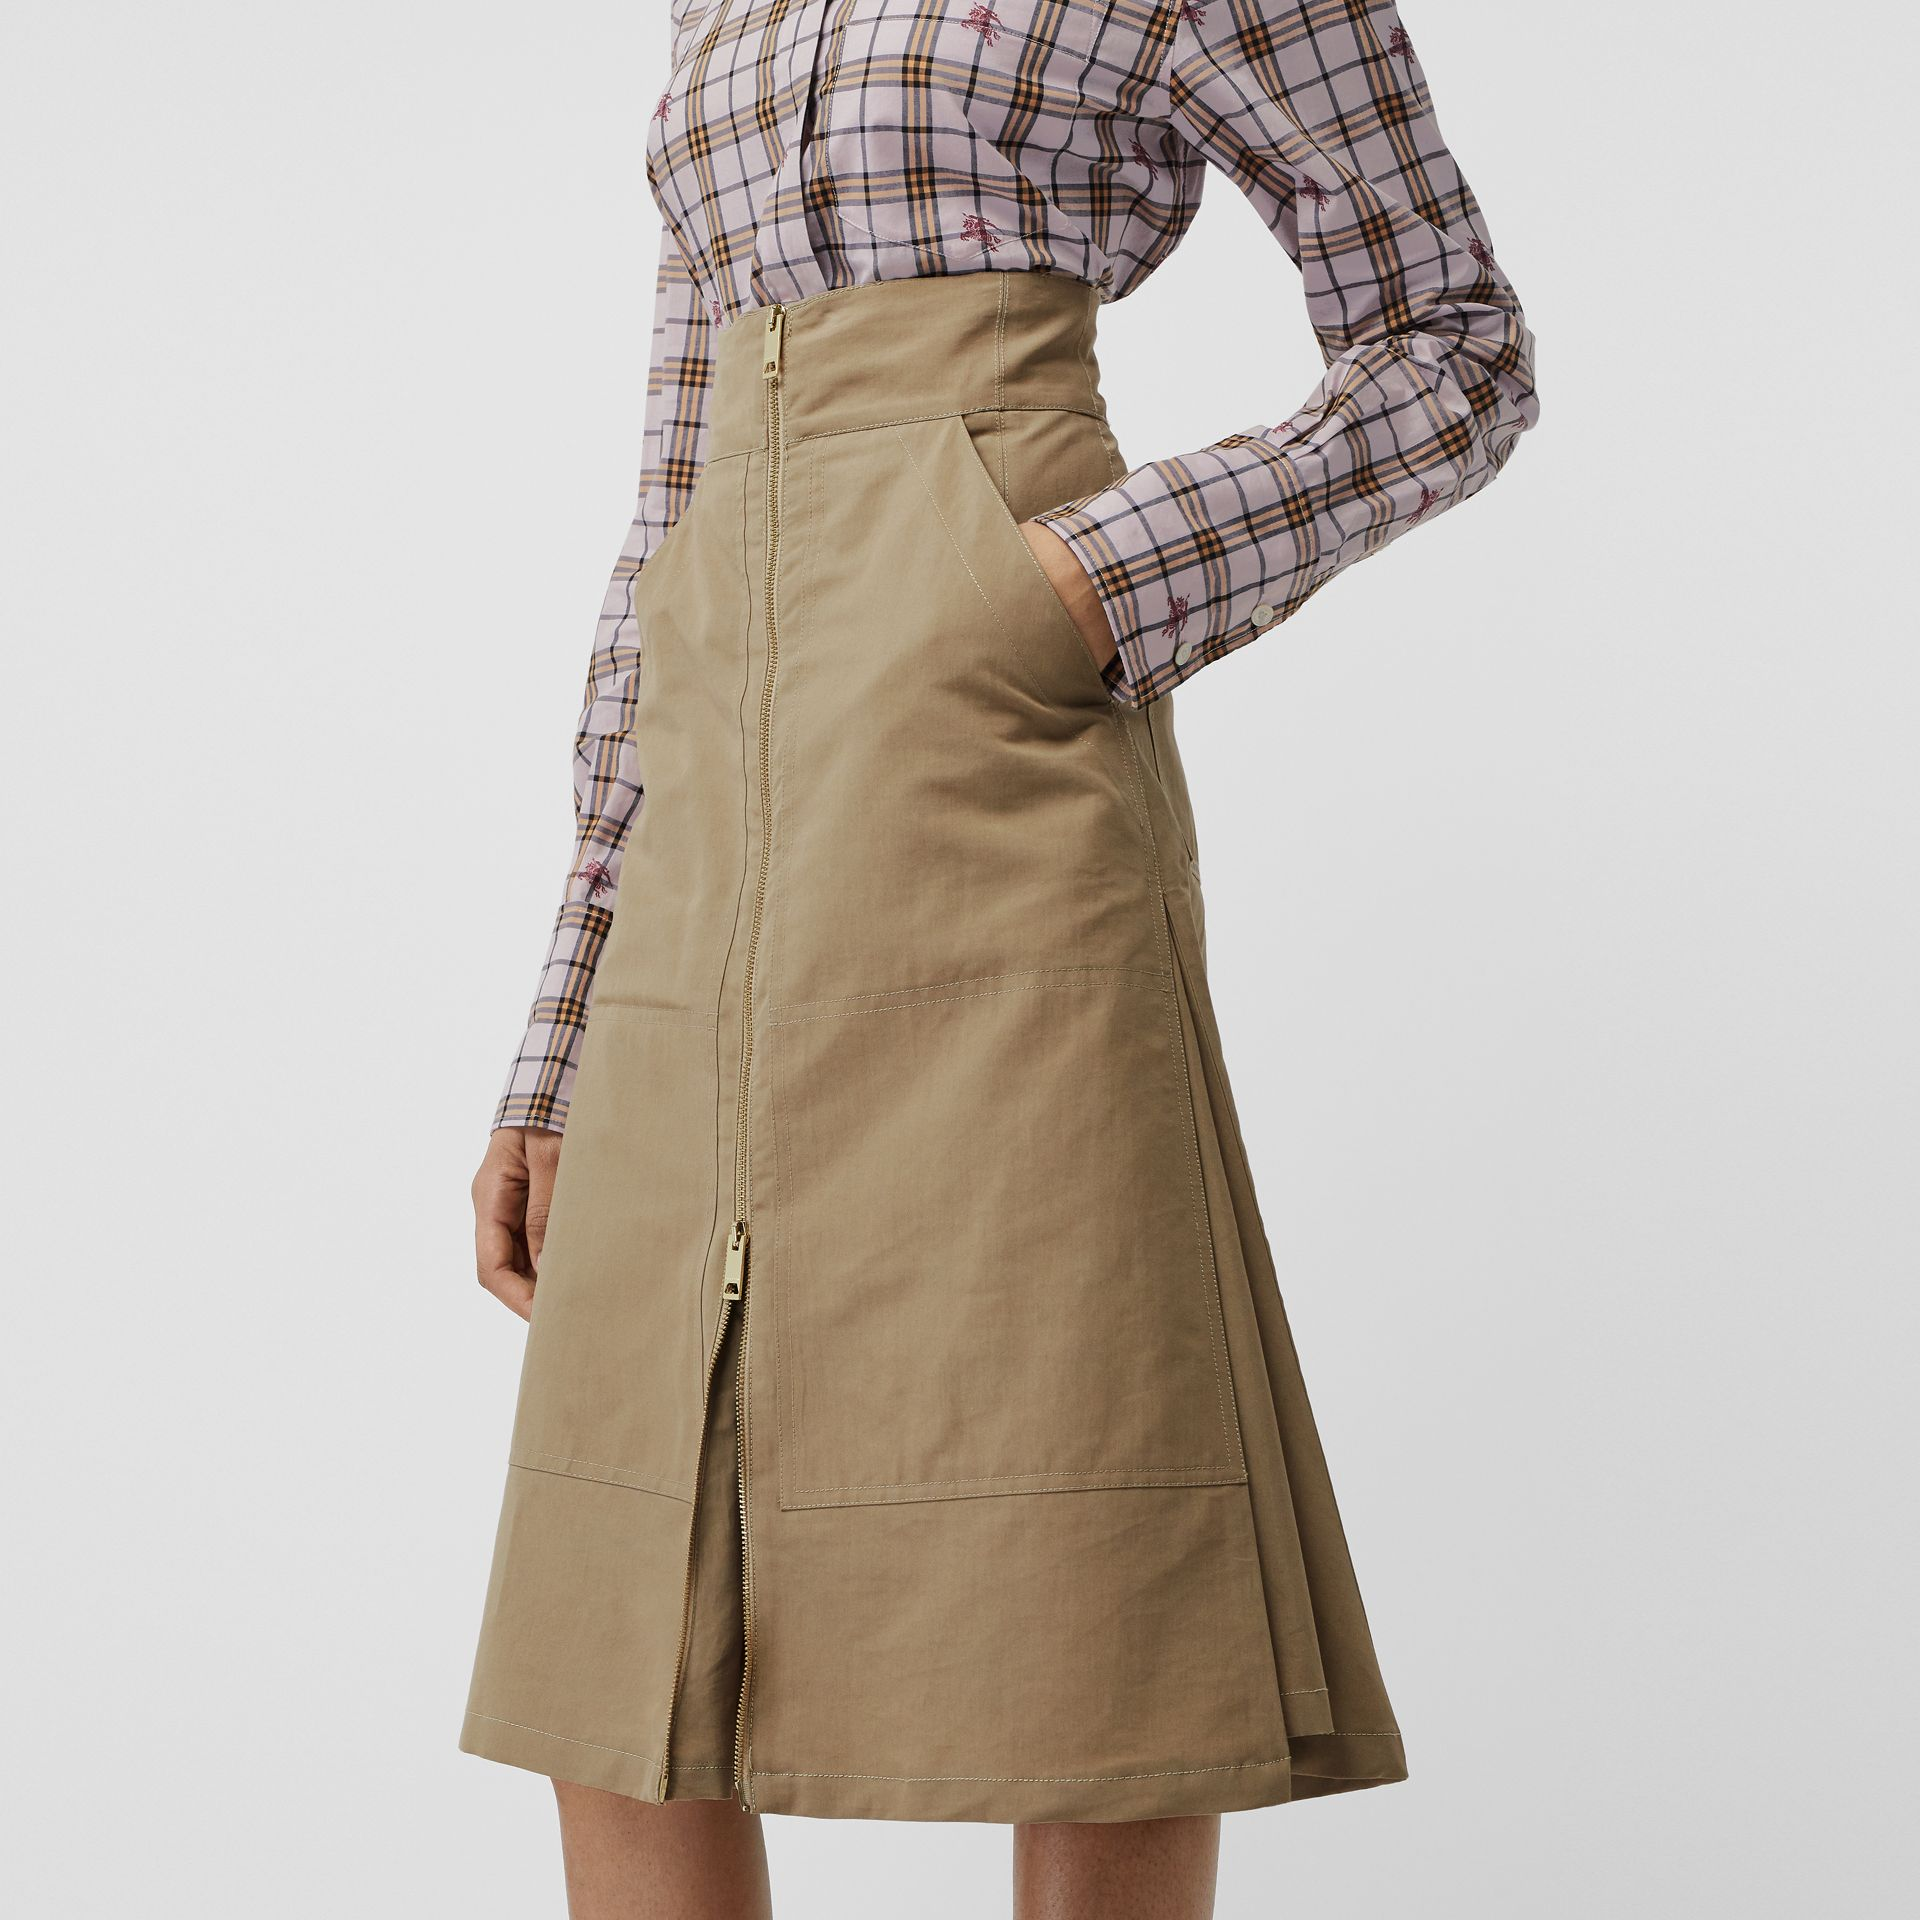 Cotton Silk High-waisted Skirt in Beige - Women | Burberry Hong Kong - gallery image 3